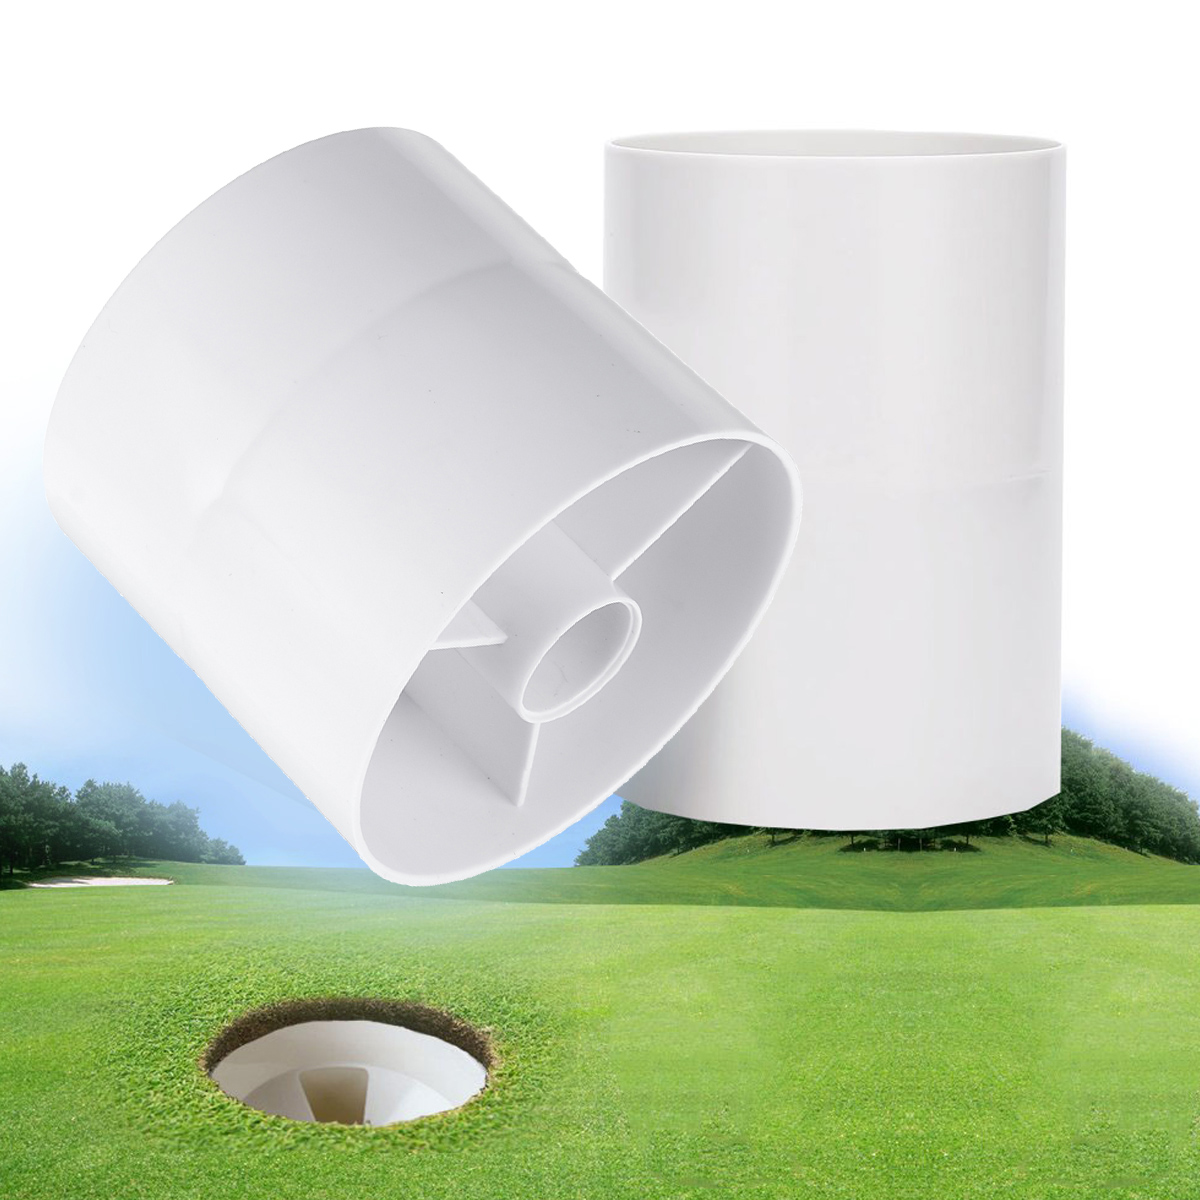 10x10.8cm ABS Golf Hole Cup Plastic Putting Green Cups Golf Acce